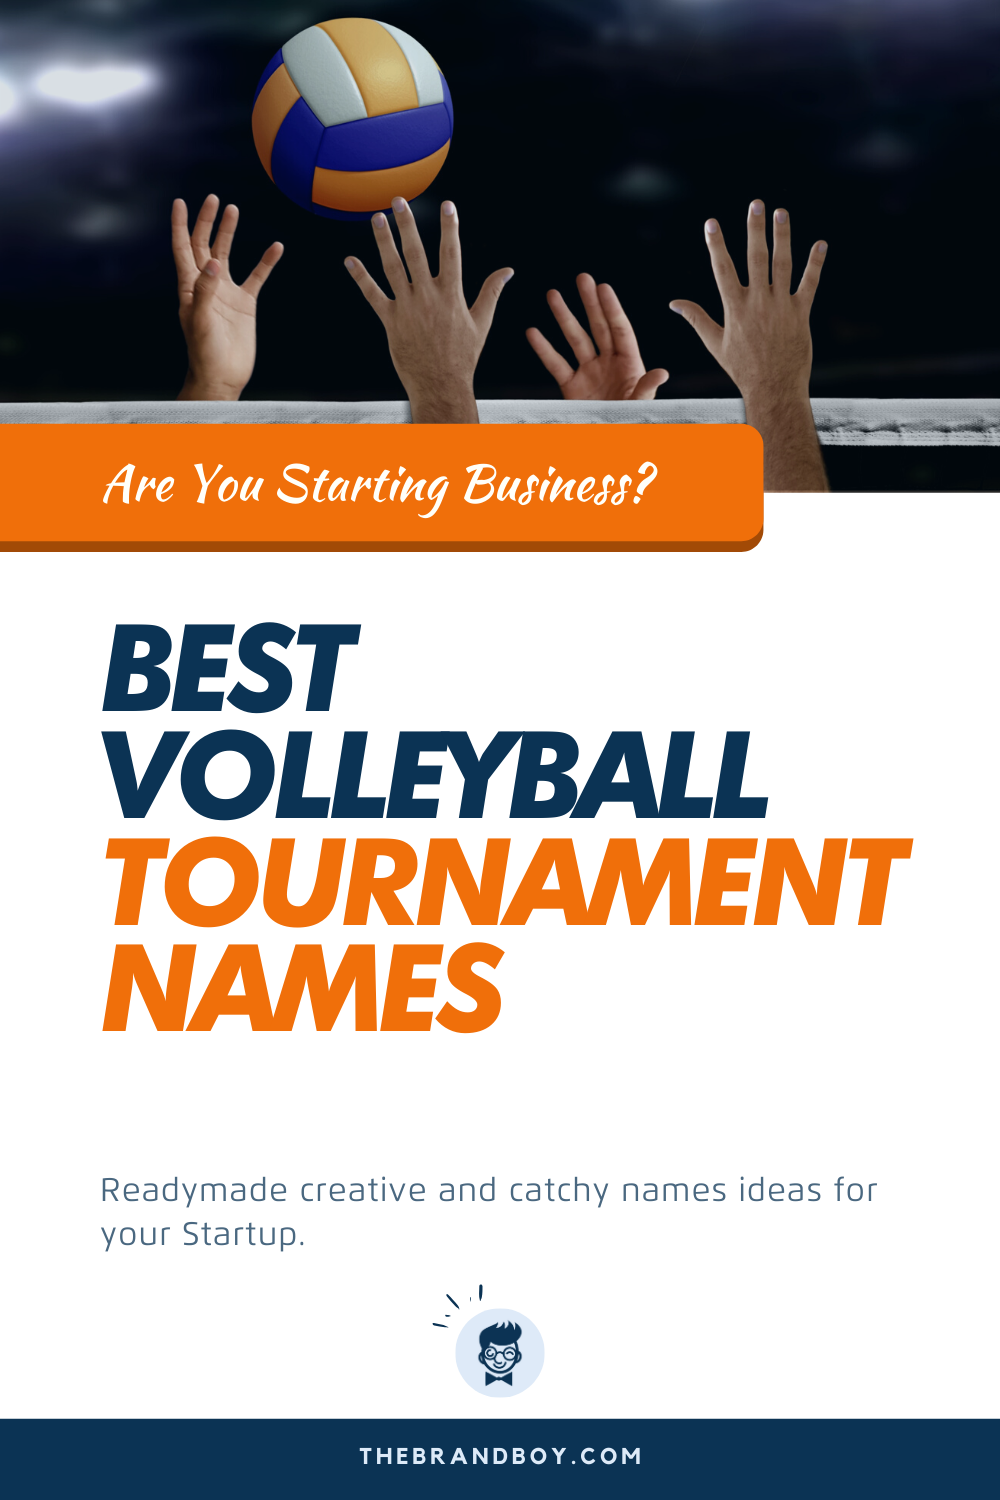 480 Best Volleyball Tournament Names Ideas Thebrandboy Com In 2020 Volleyball Tournaments Tournaments Volleyball